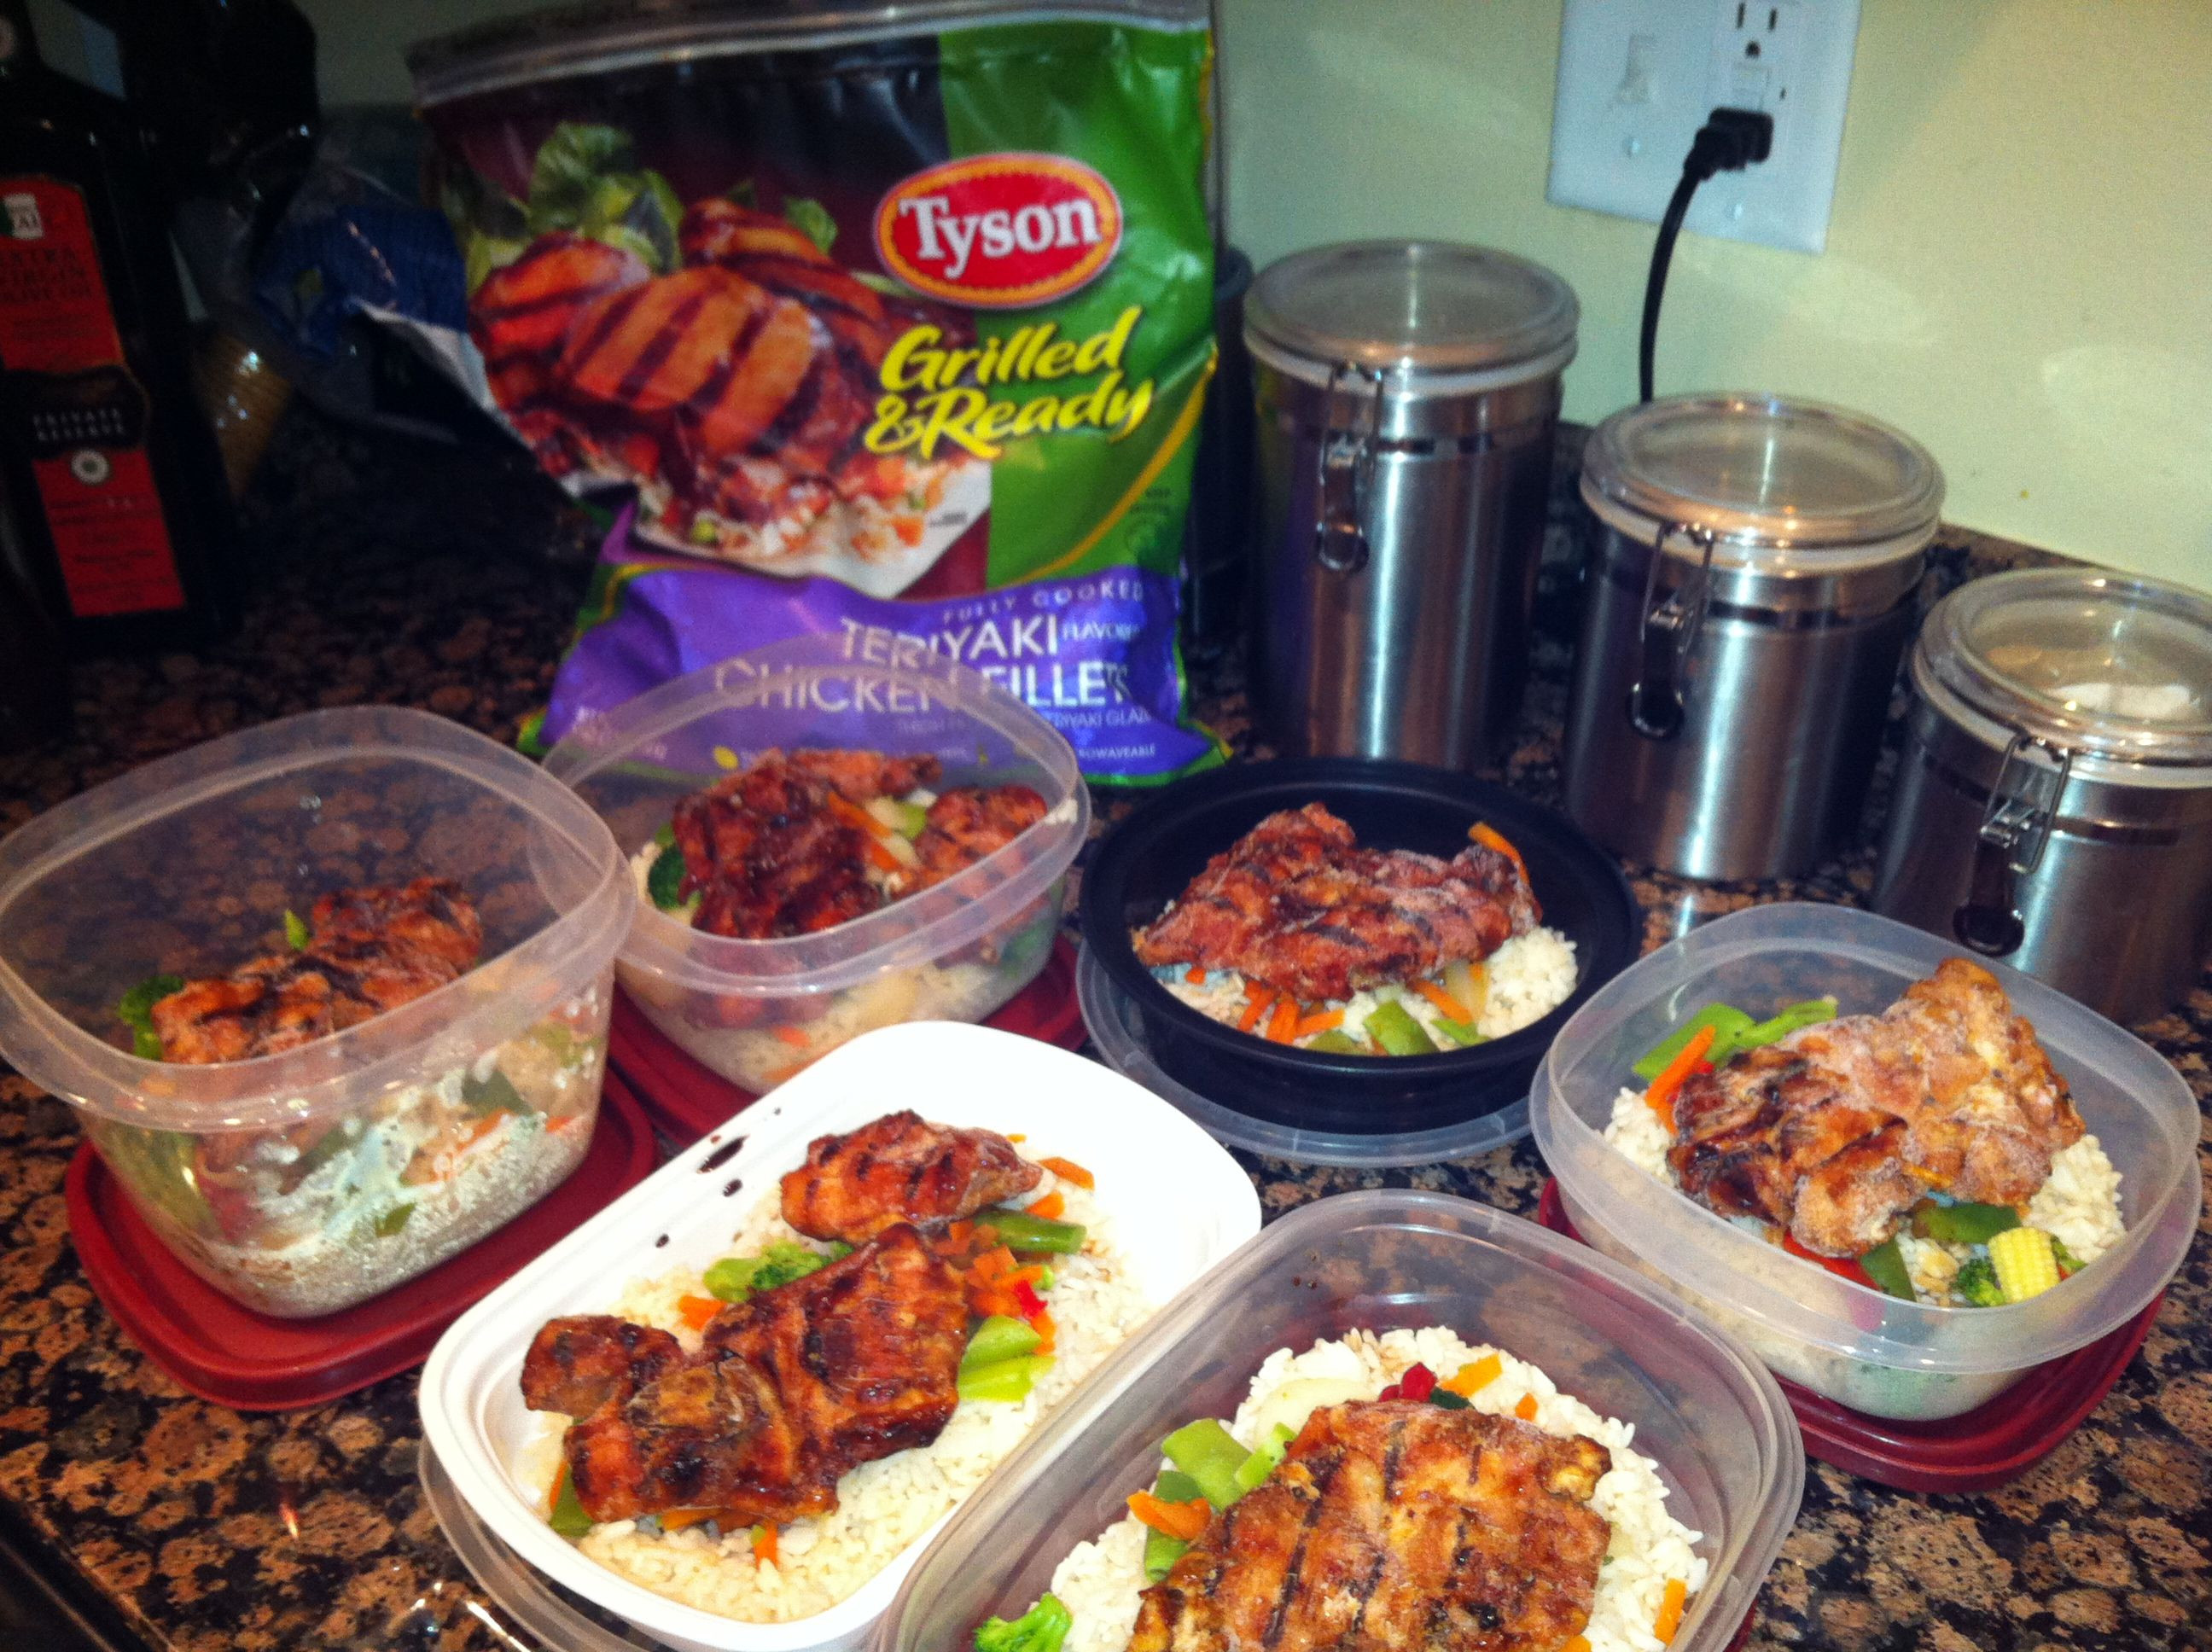 Healthy Grab And Go Lunches  Grab and go hot healthy meals I took rice stir fry